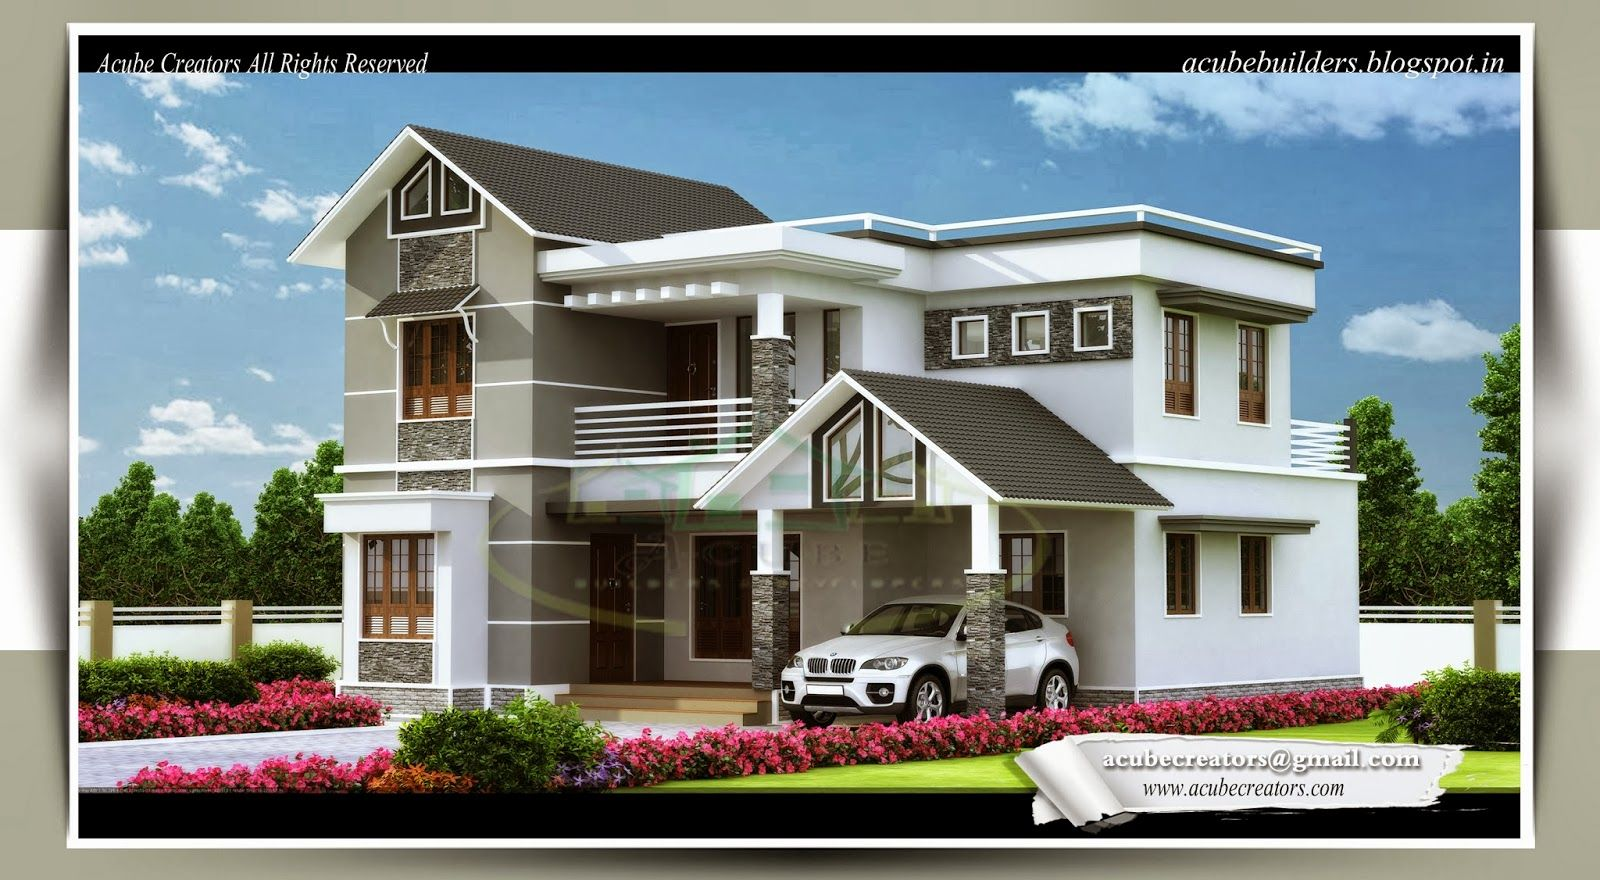 2 Storey Sloping Roof Home Plan   Kerala Home Design   Architecture House  Plans | Architecture | Pinterest | Kerala, Architecture And House